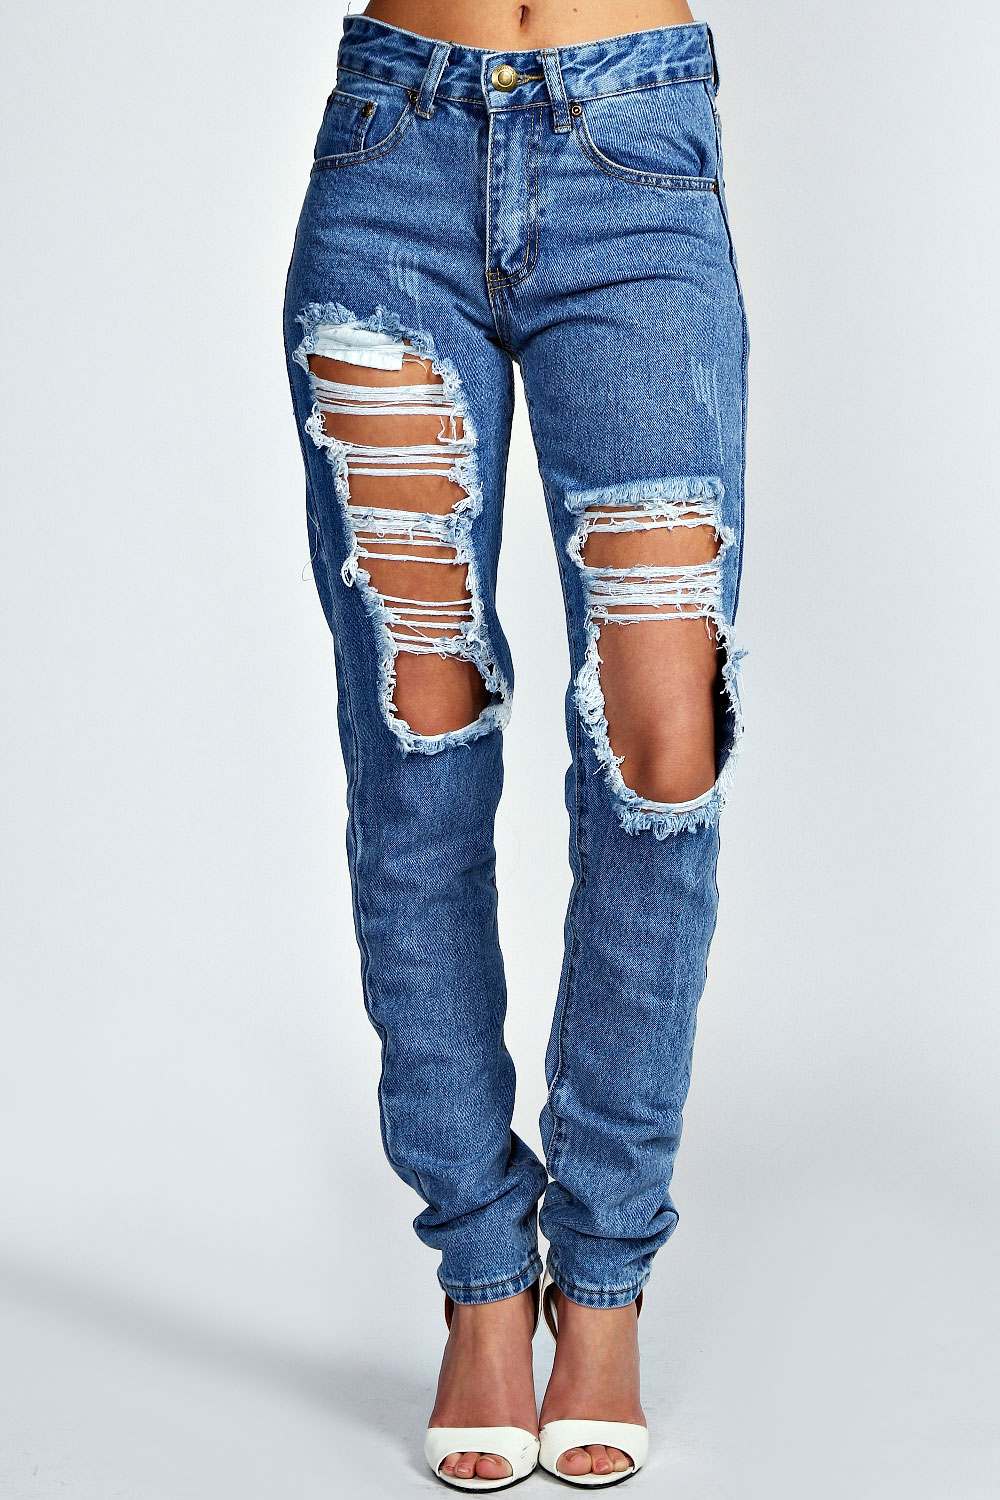 SLIM FIT CUT, ZLZ Ripped distressed jeans pants originating from Women's Hight Waisted Butt Lift Stretch Ripped Skinny Jeans Distressed Denim Pants. by Skirt BL. $ - $ $ 10 $ 30 99 Prime. FREE Shipping on eligible orders. Some sizes/colors are Prime eligible.